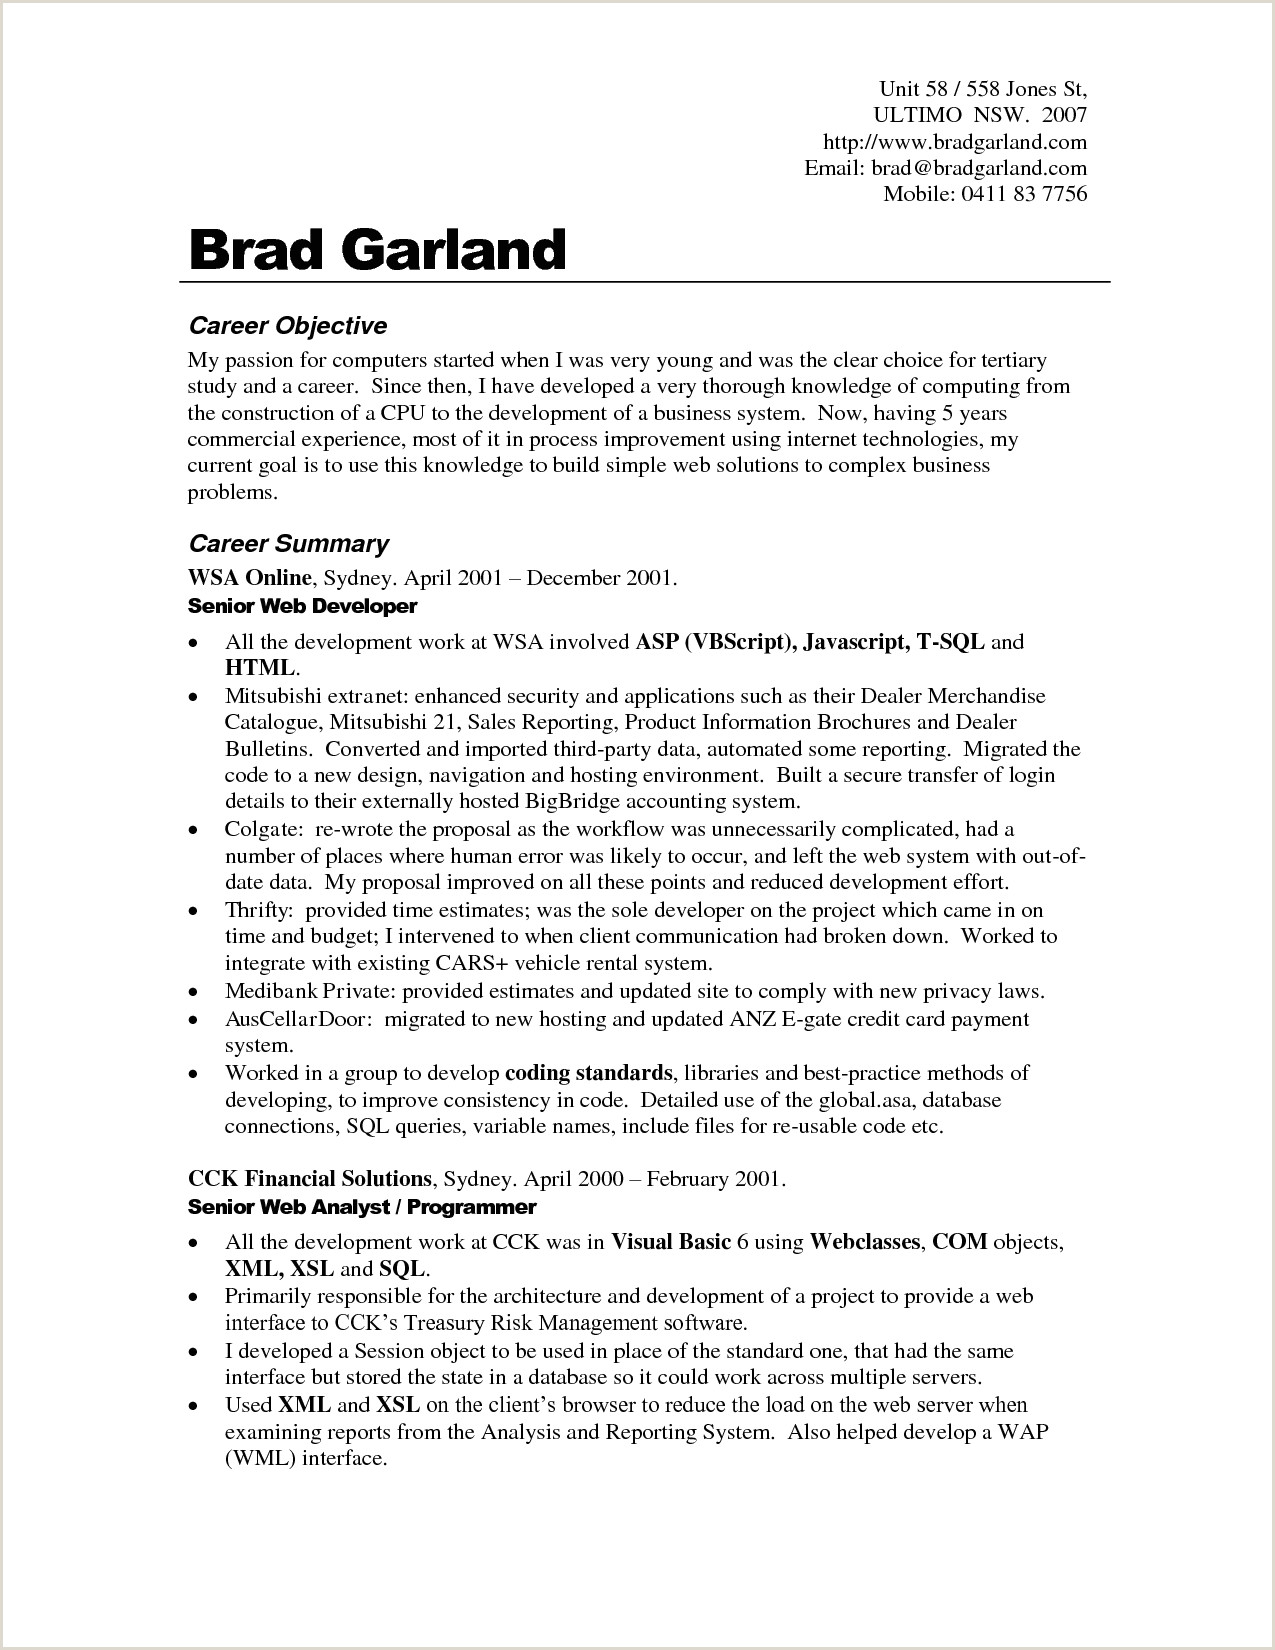 Counseling Resume Objective Resume Objectives Examples Best Templateresume Objective